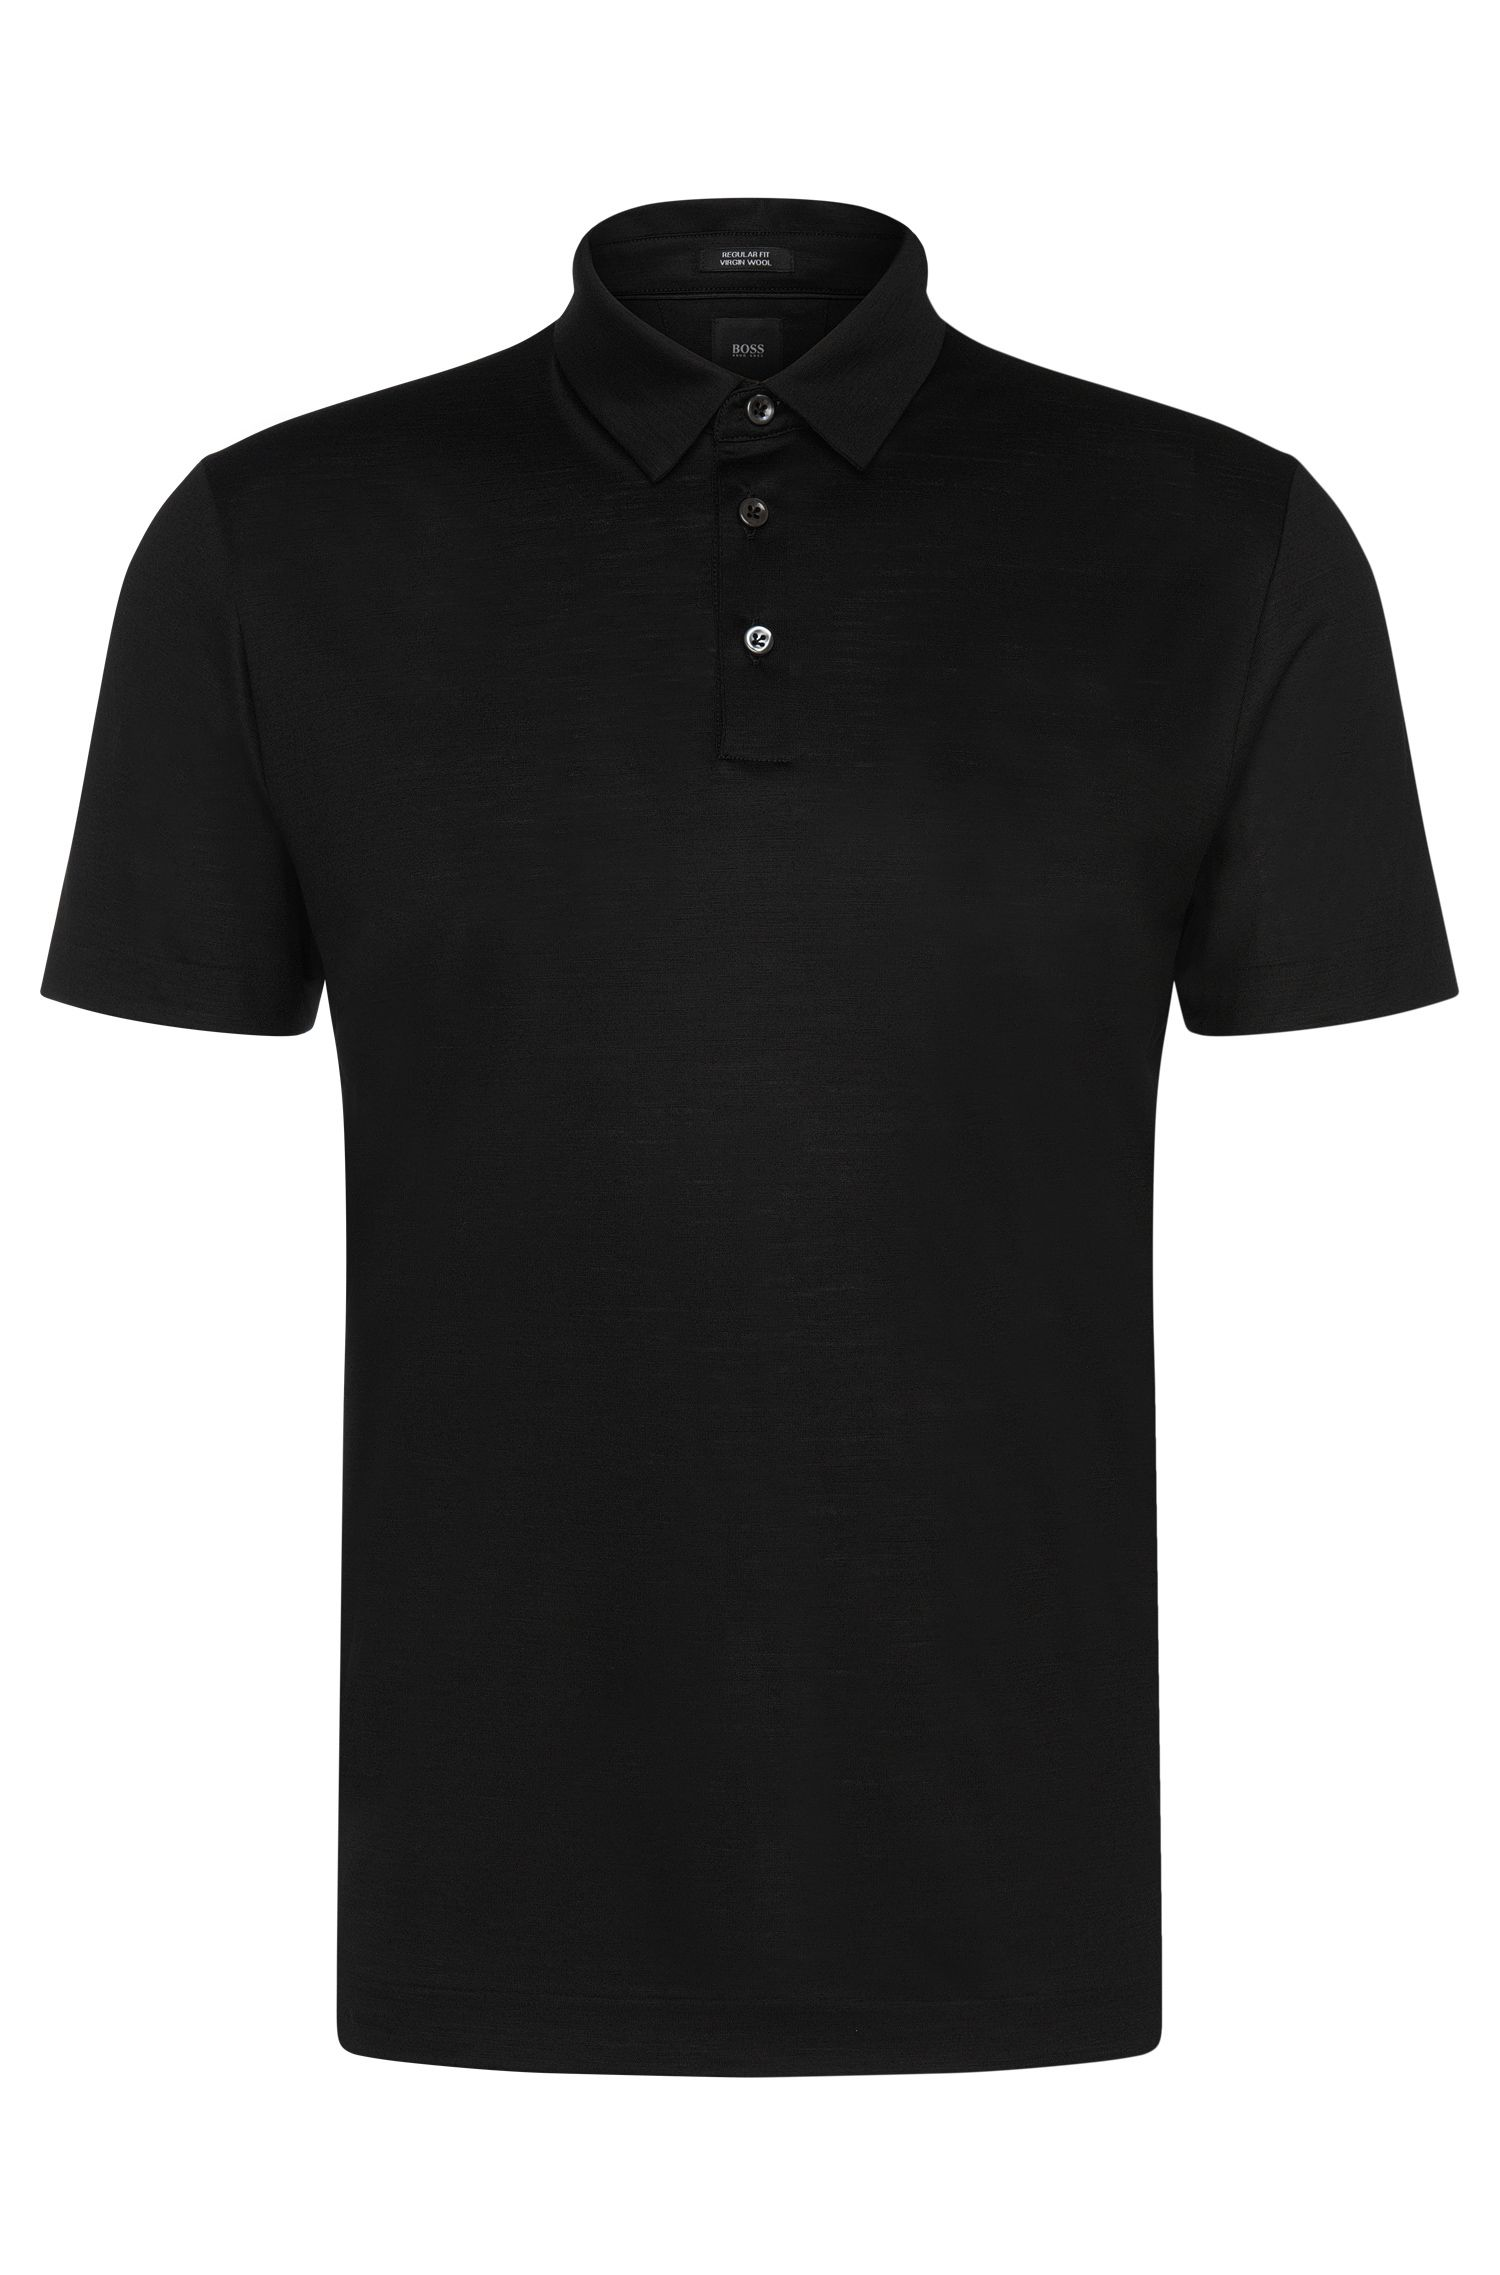 'T-Perkins' | Regular Fit, Italian Virgin Wool Polo